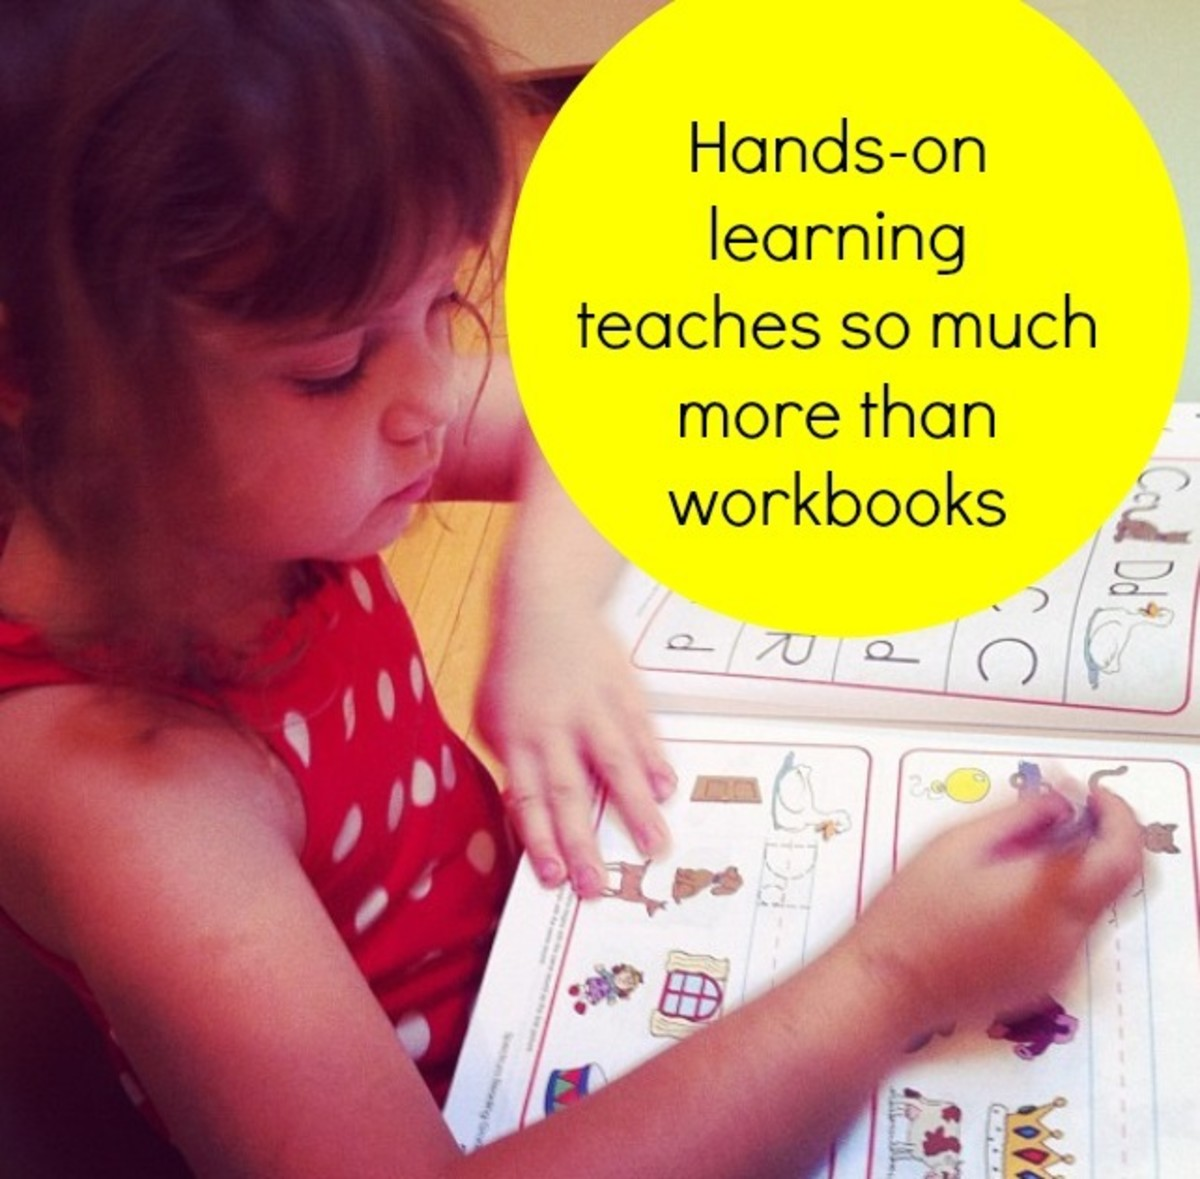 When public preschools became results-oriented, hands-on learning got diminished.